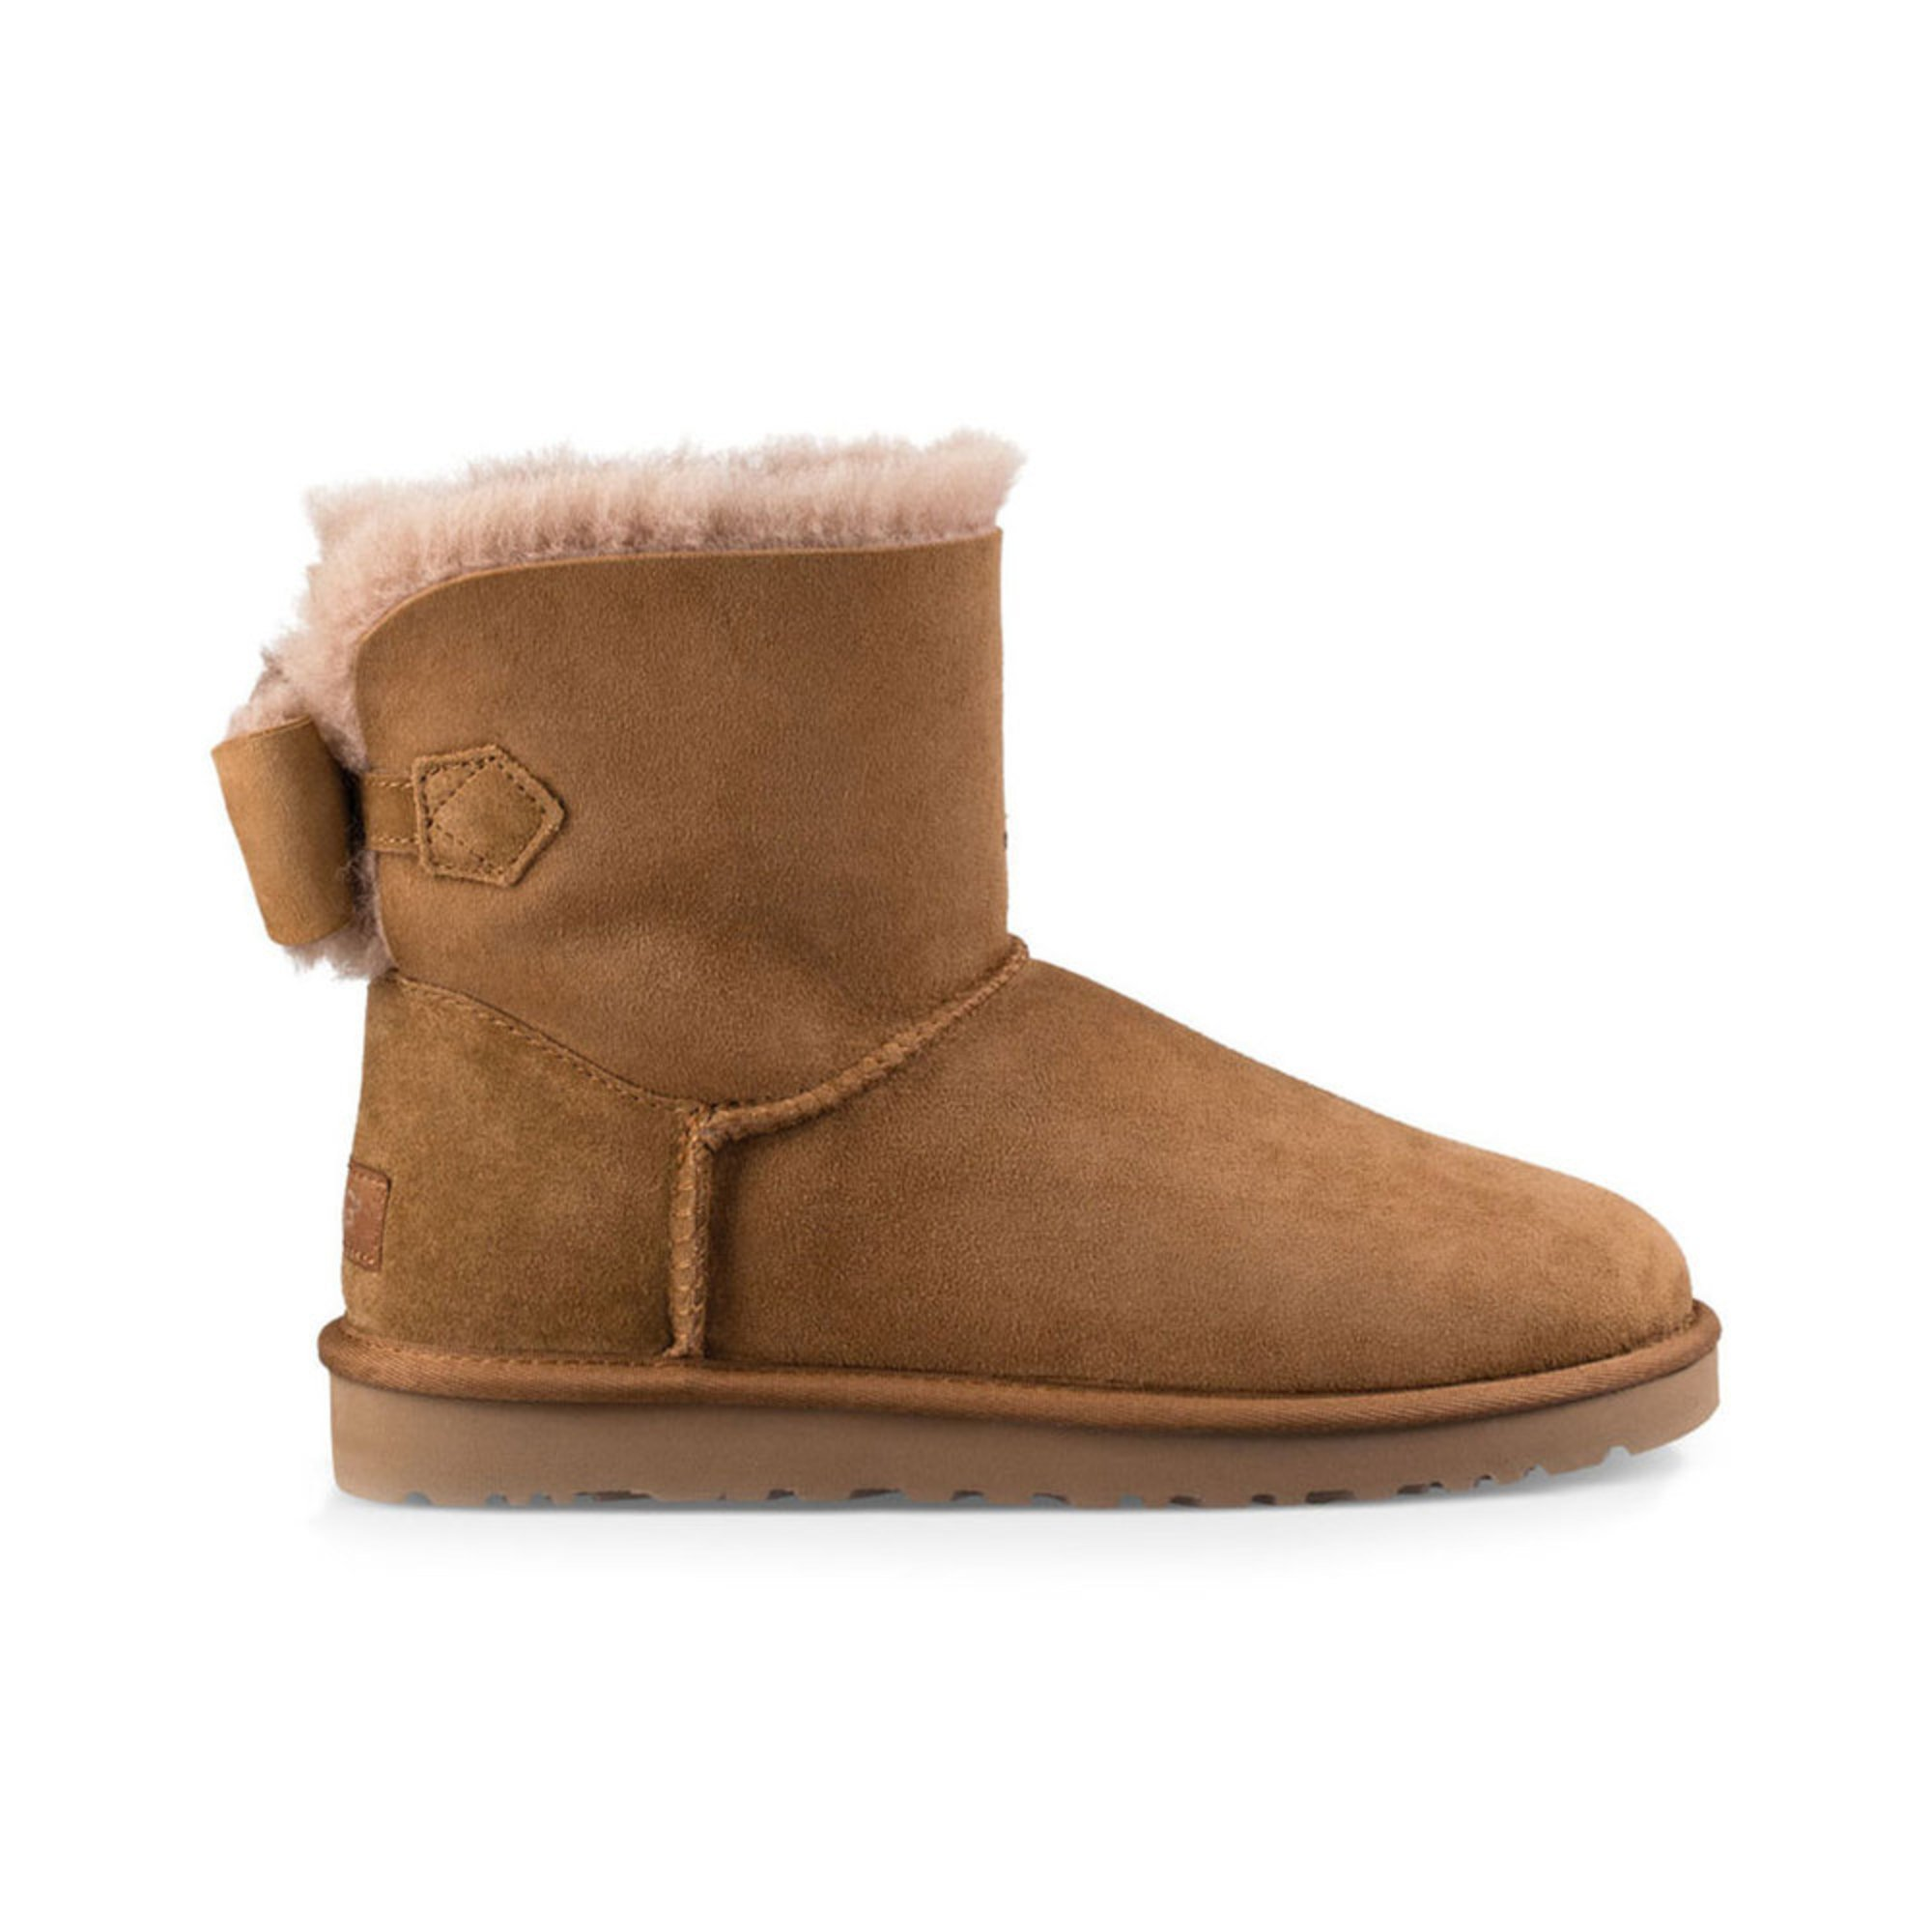 UGGS Outlet Store Online,Cheap Ugg Boots Latest Style And Classic Style Hot Sale,Save Up To 75%OFF,Time Is Limited,Welcome To Buy!